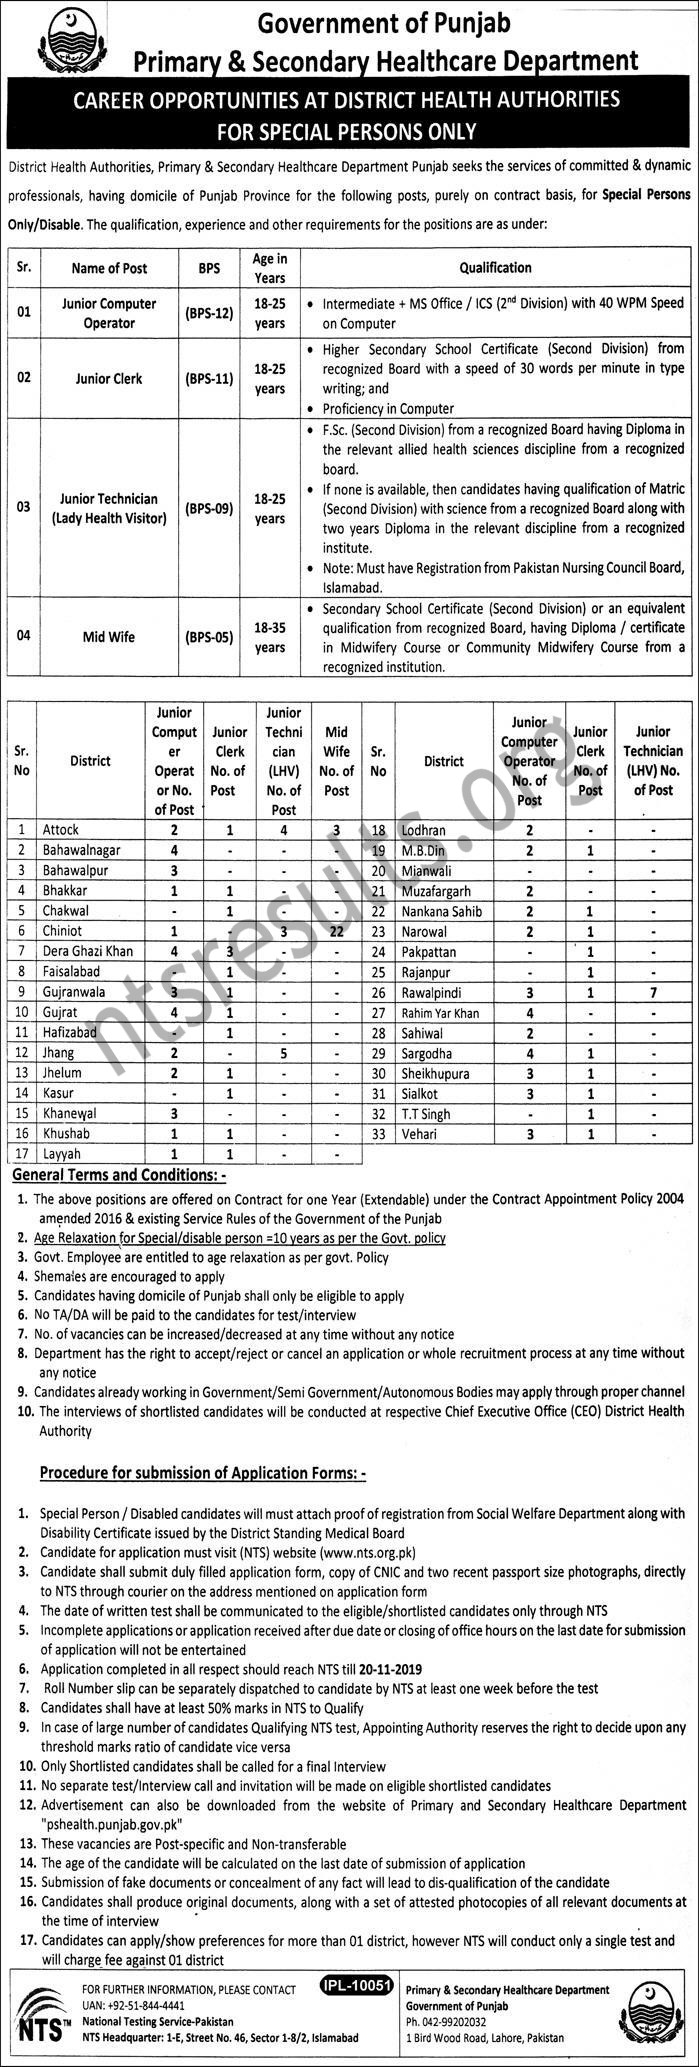 Primary Secondary Health Care Department Jobs NTS Answer Keys Result District Health Authorities for Special Persons Only